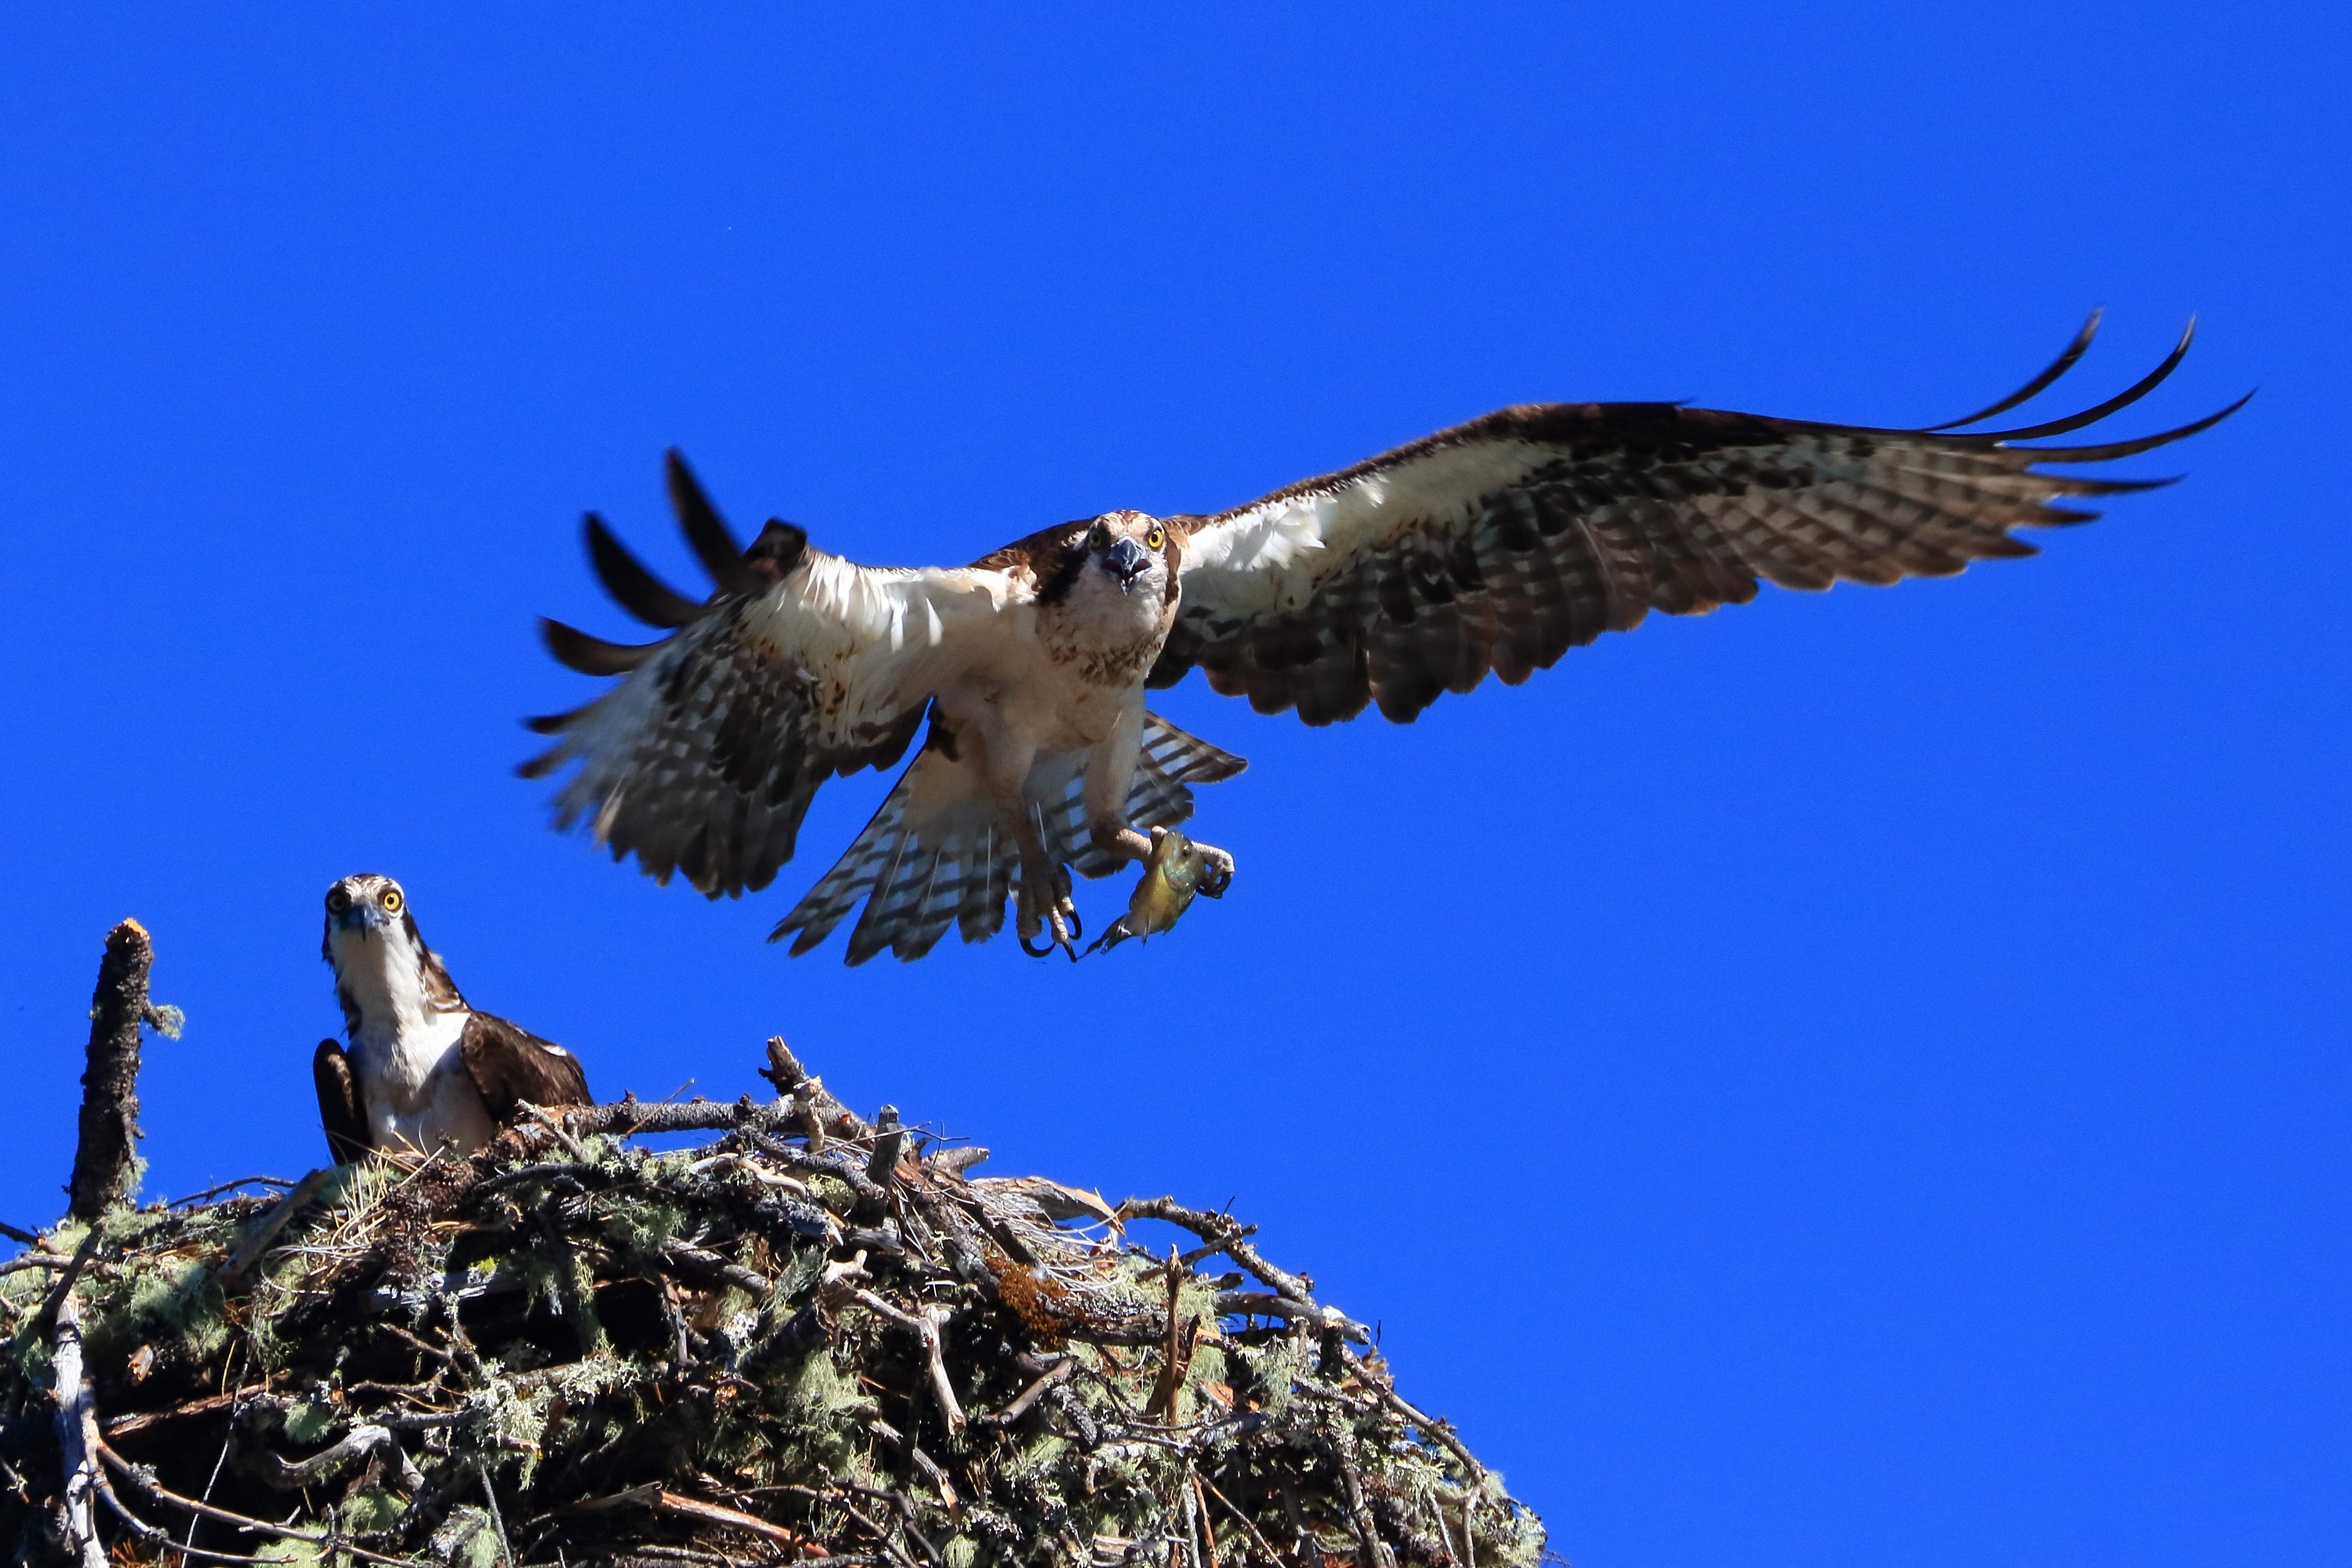 An osprey brings a fish to the nest near Lost Creek Lake. - Photo by Rick Shroy